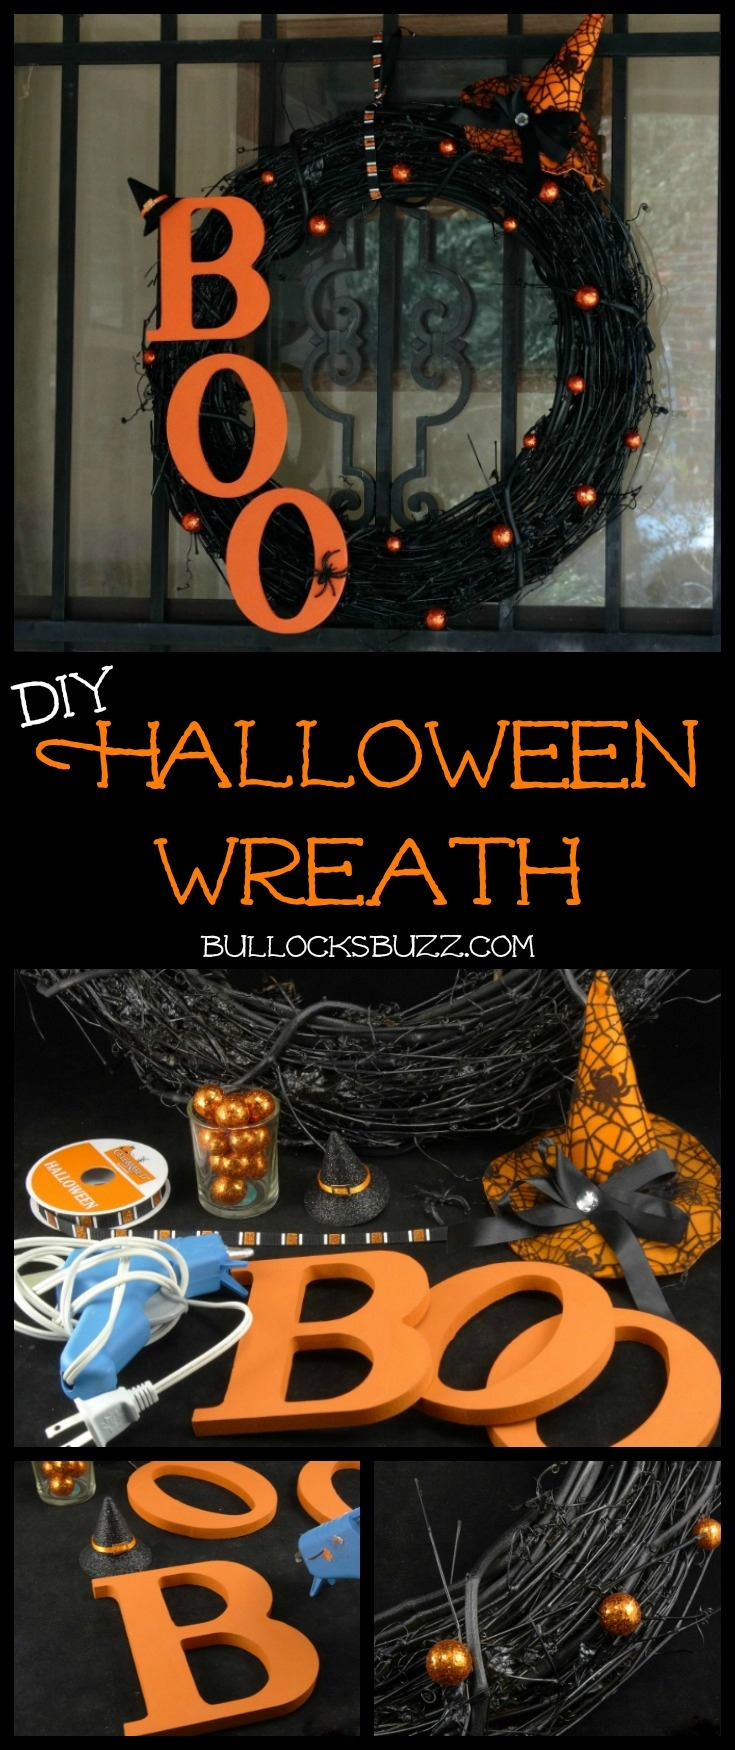 Shockingly spooky and dreadfully fun, this DIY Halloween wreath is the perfect way to get your Halloween off to a screaming start!